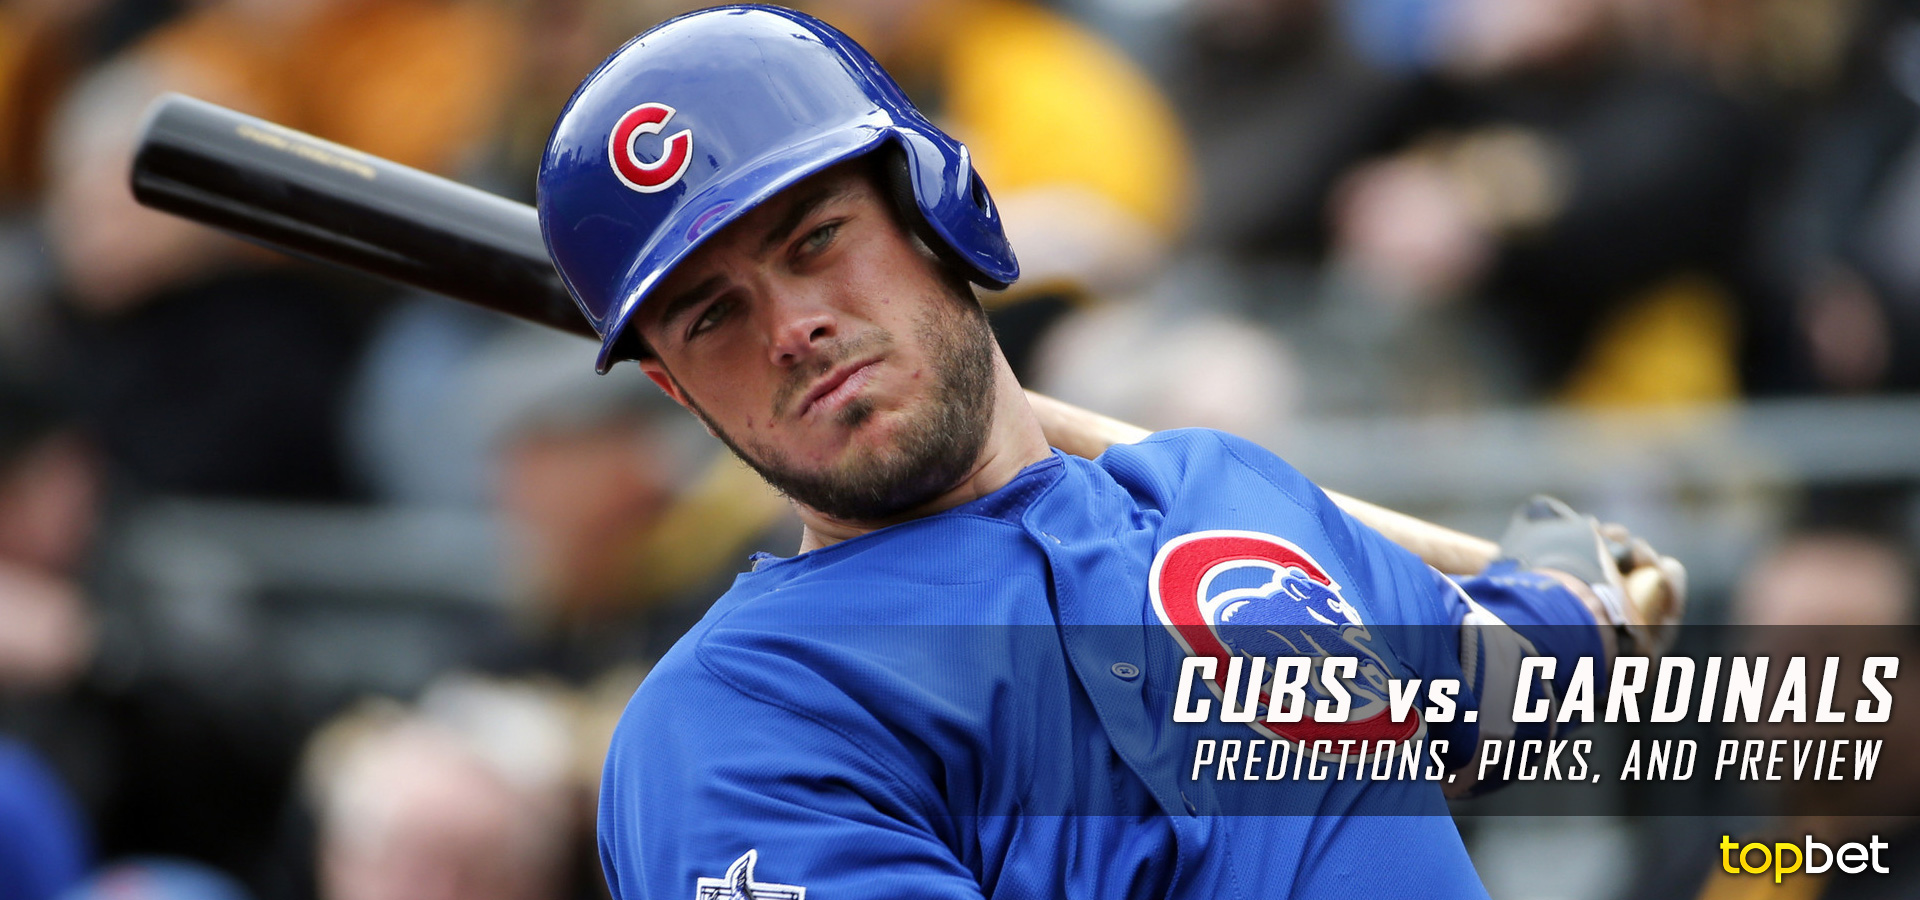 cubs cardinals louis st chicago mlb predictions picks preview